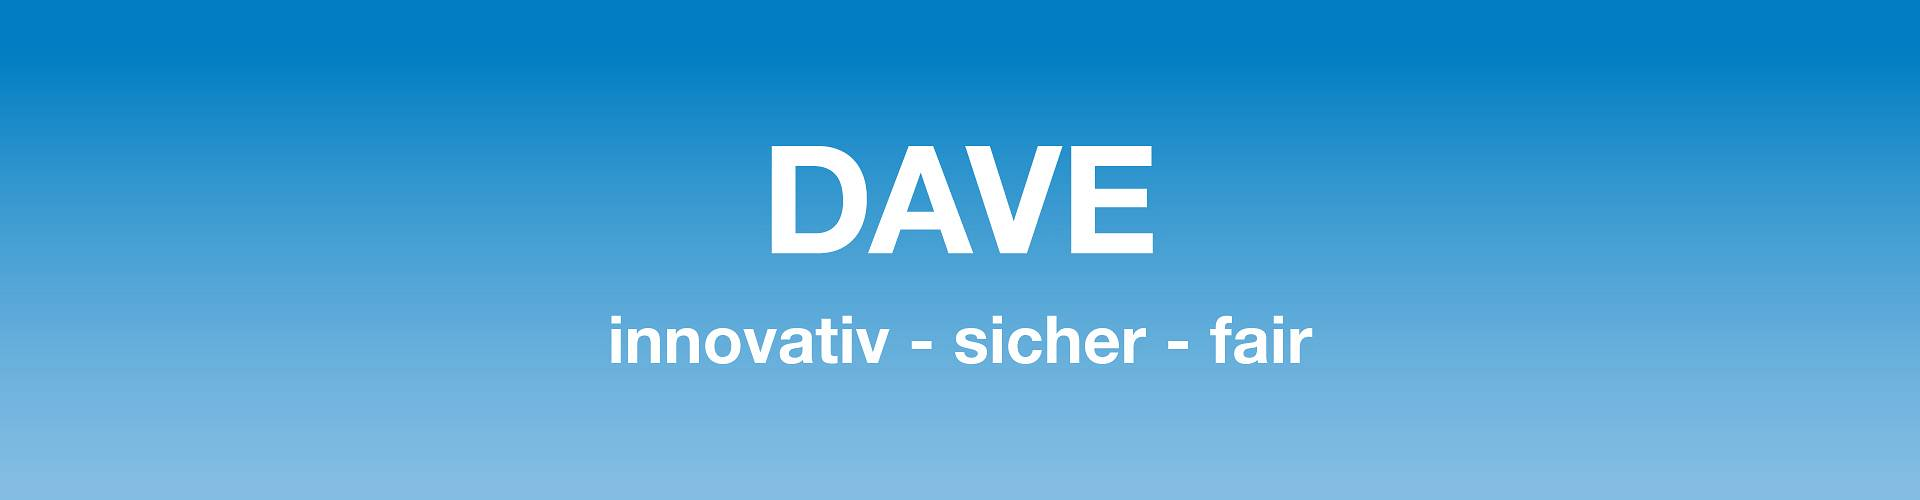 DAVE - innovativ - sicher - fair RE/MAX